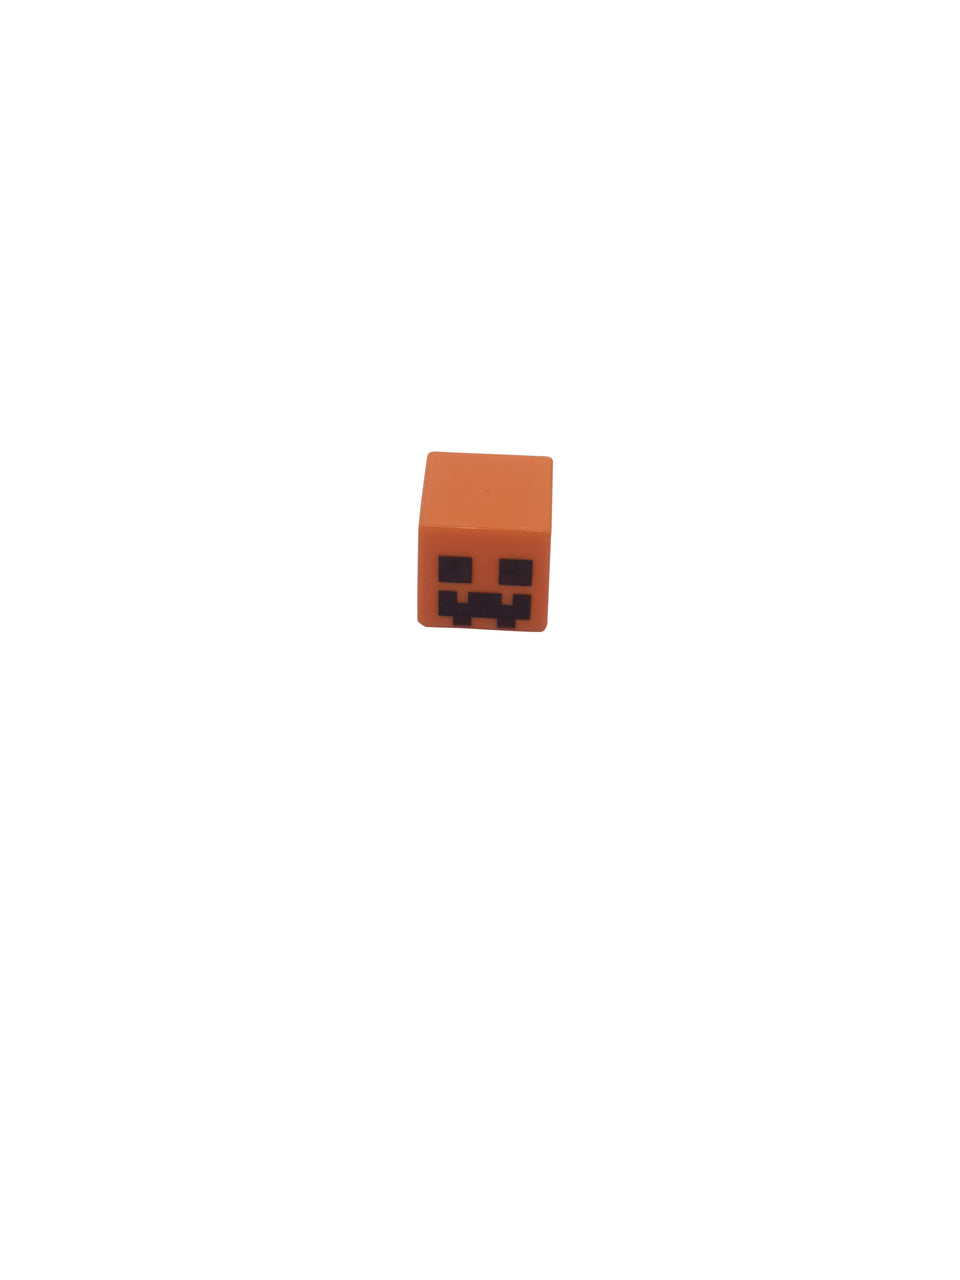 Head of a Minecraft character - Lego